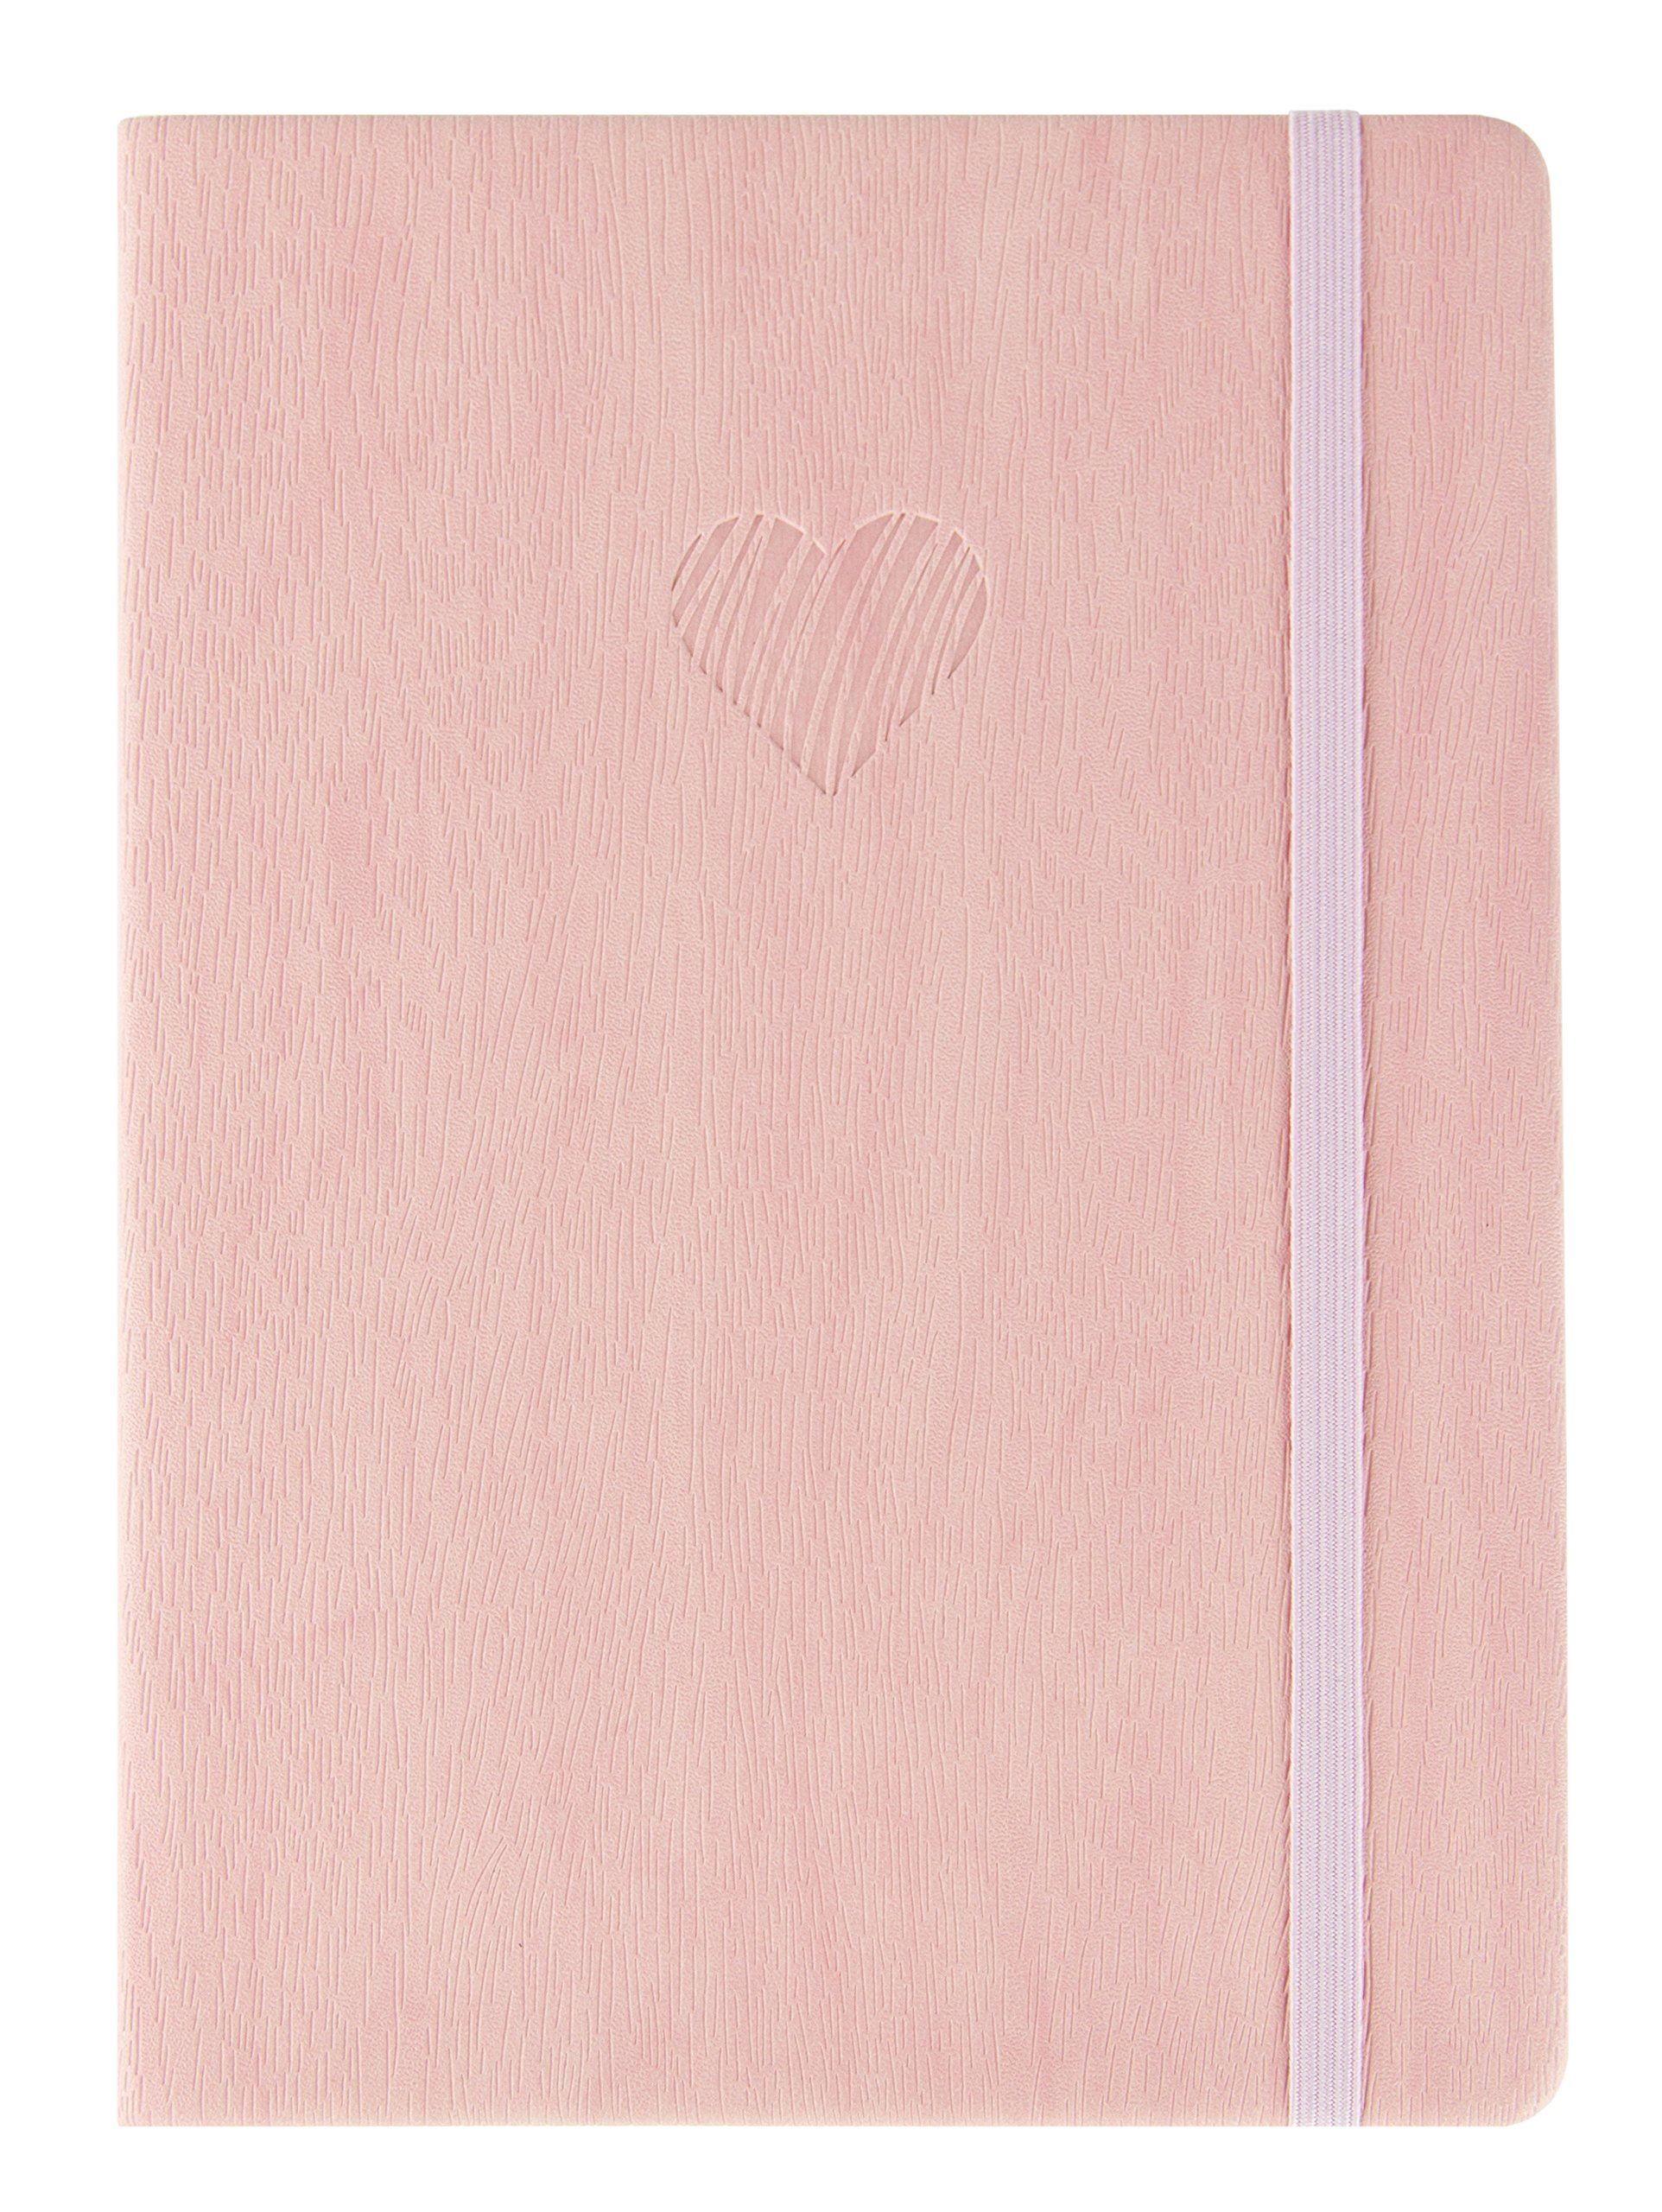 Red Co Journal with Embossed Heart, 240 Pages, 5''x 7'' Lined, Pink